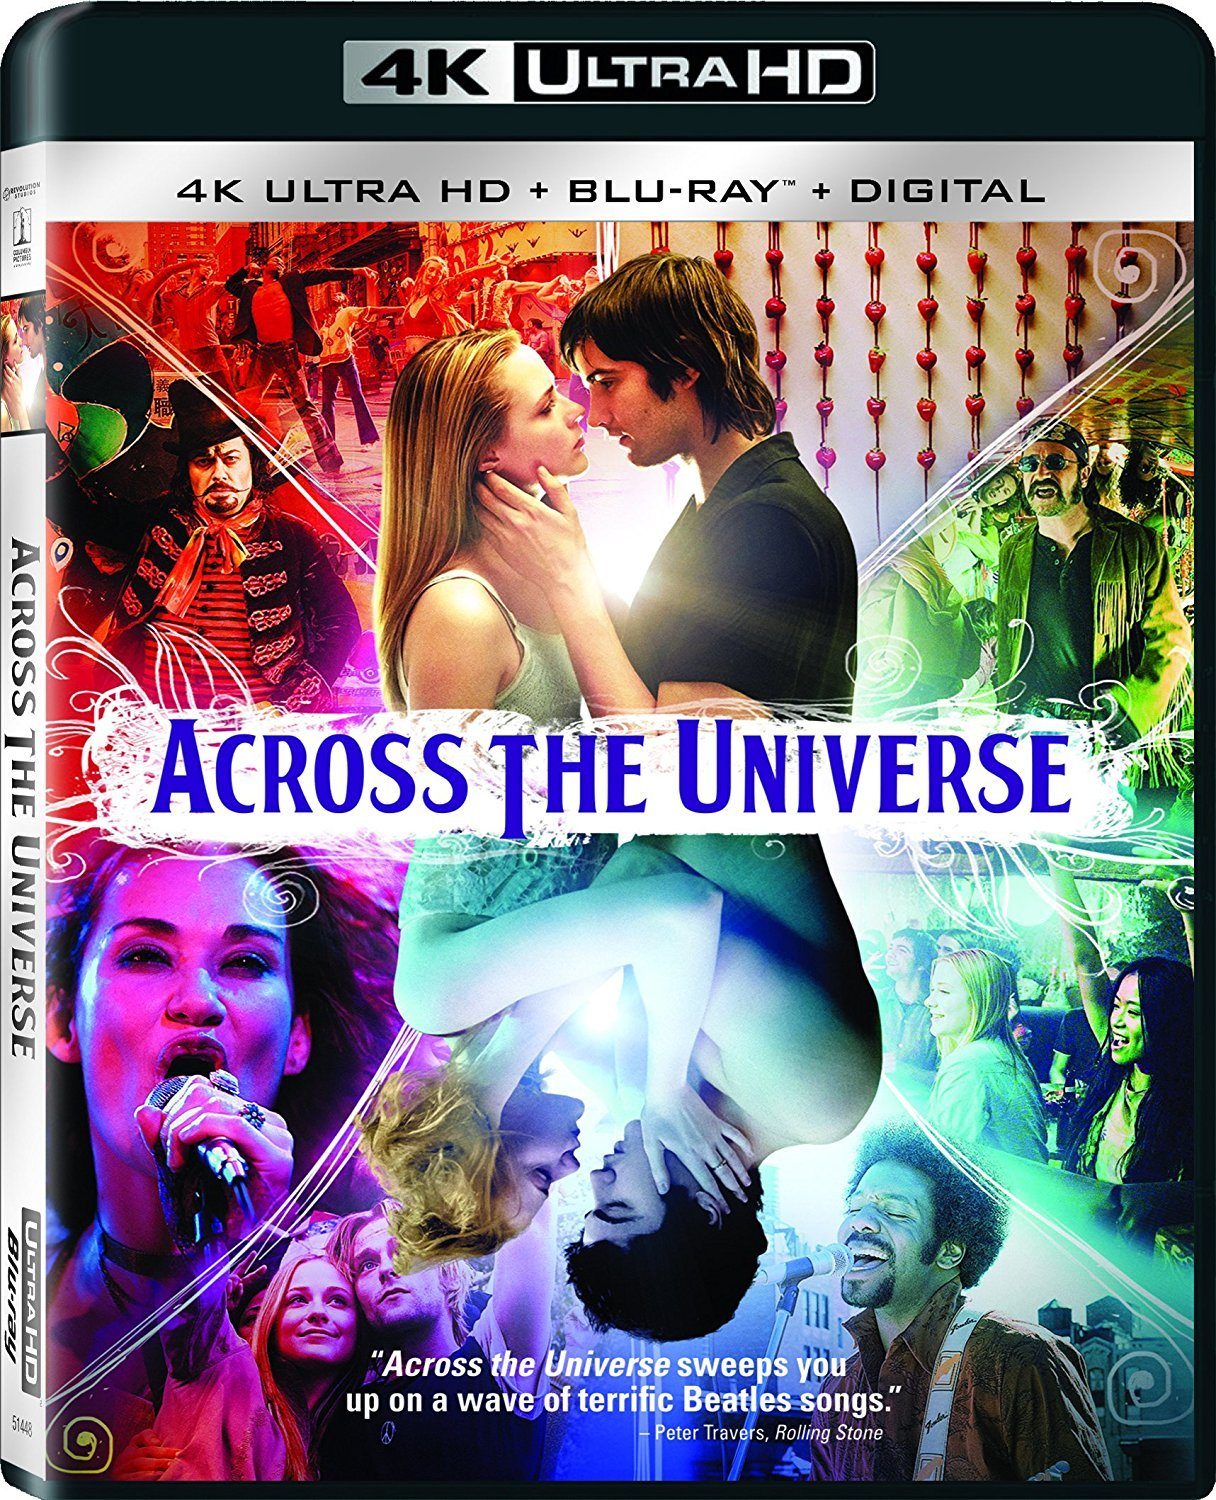 Across the Universe 4K (2007) UHD Ultra HD Blu-ray